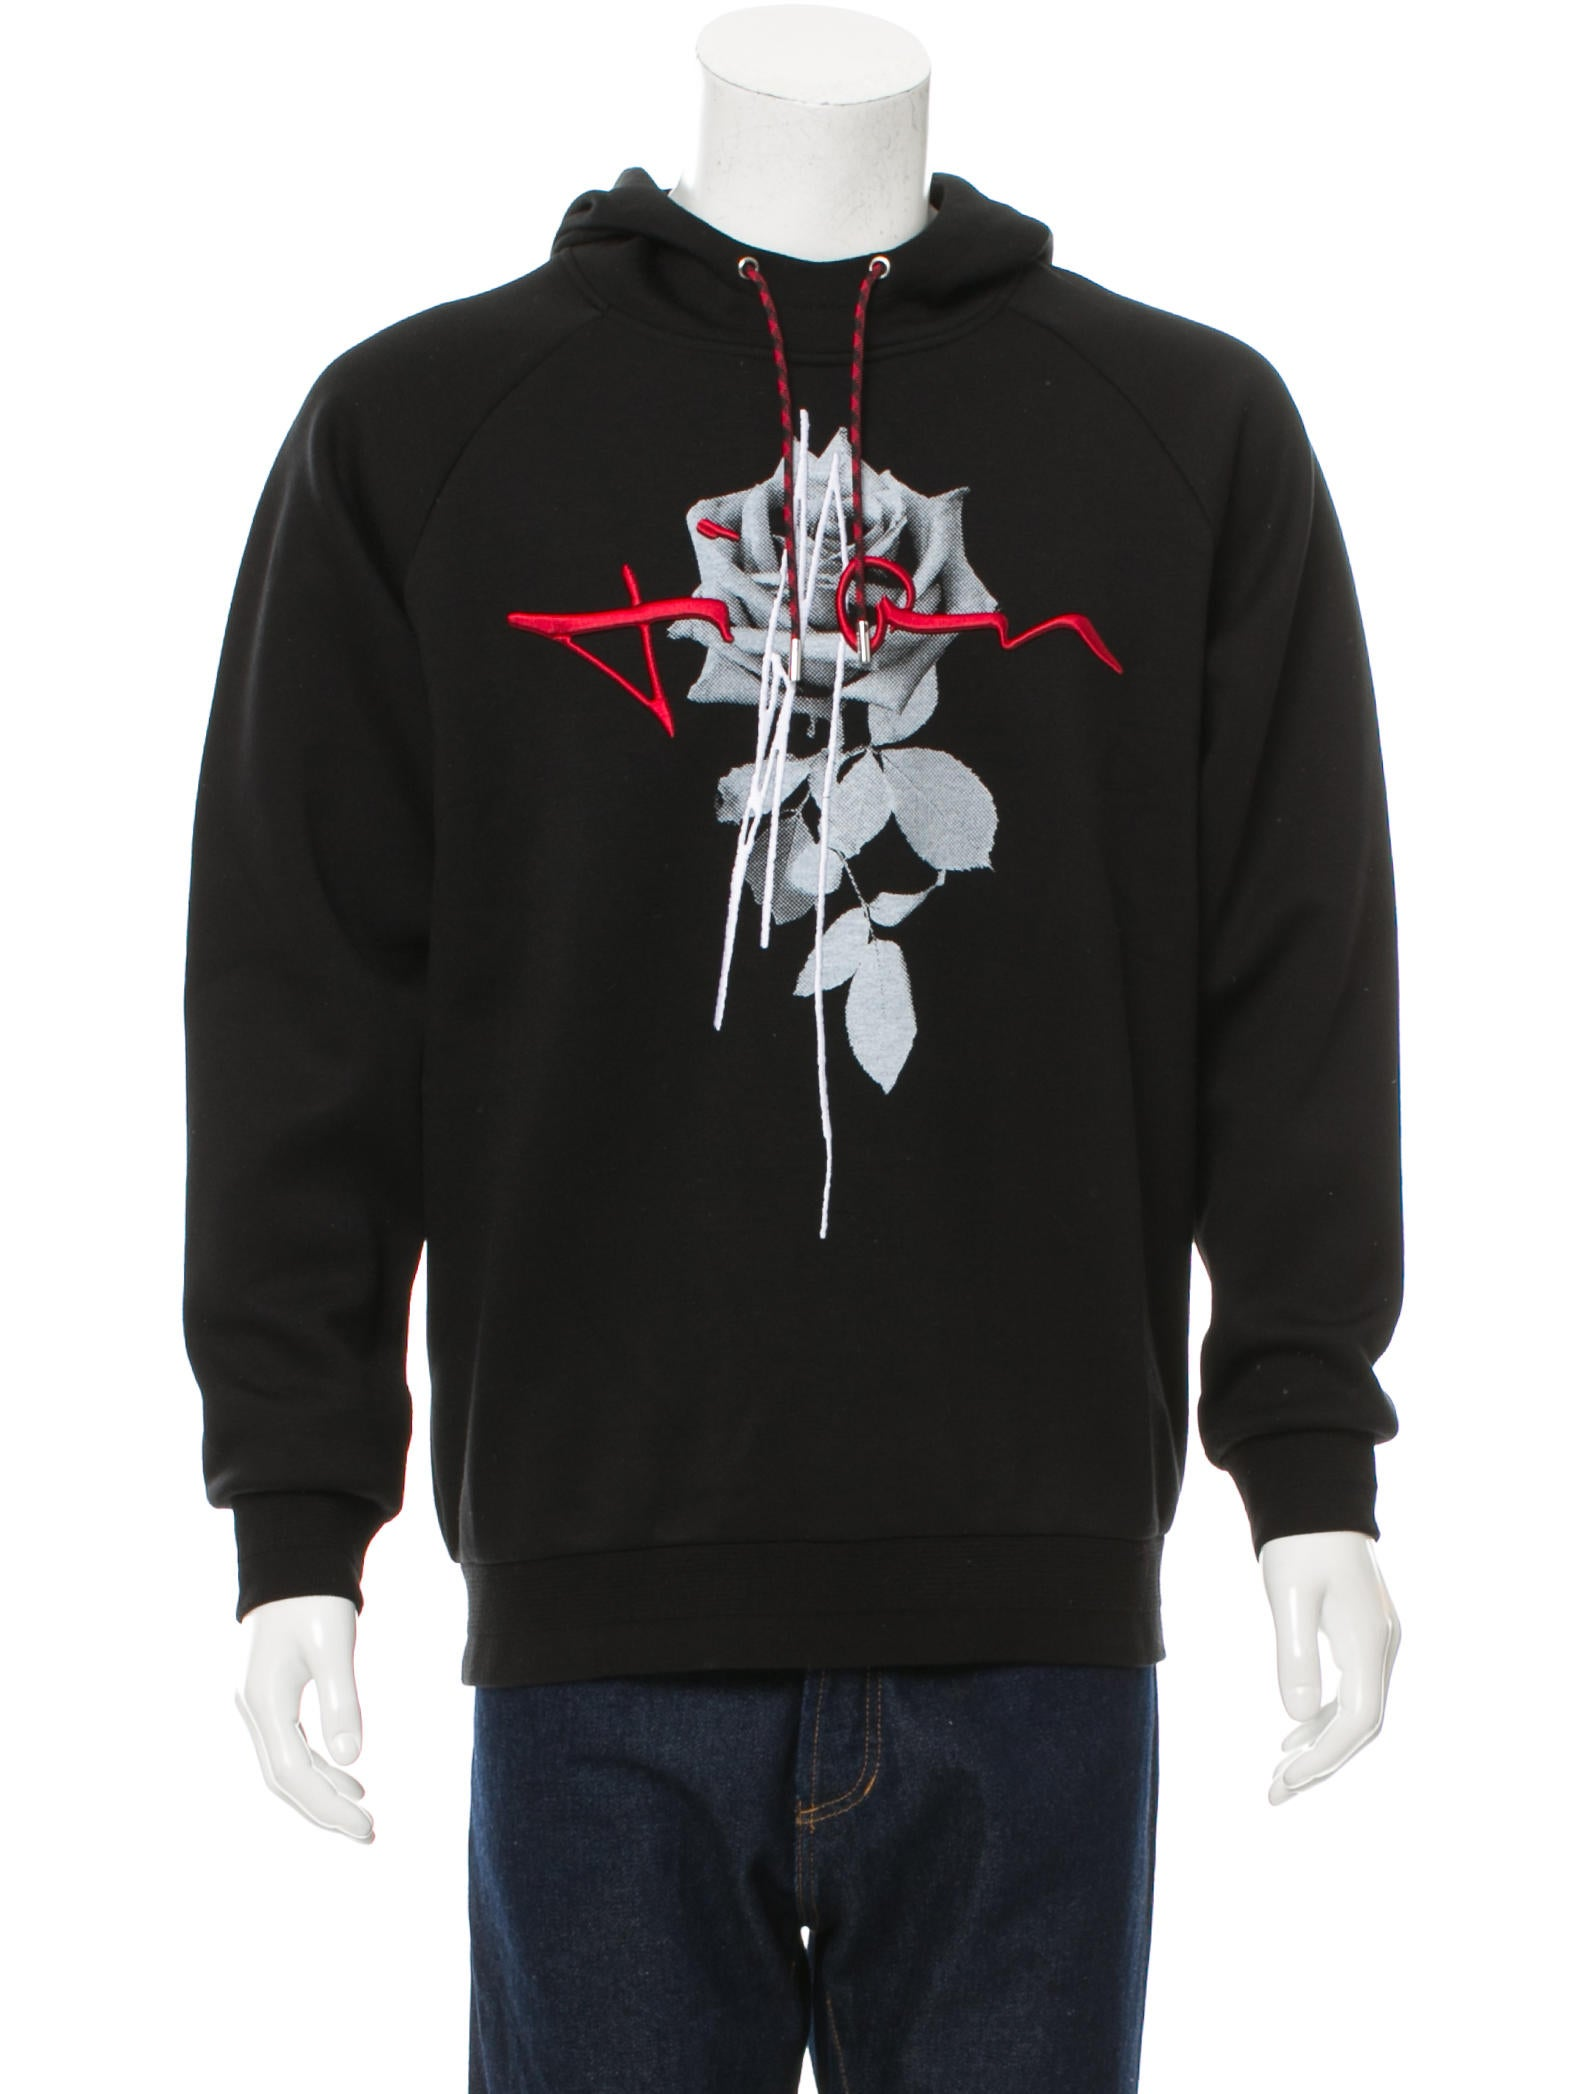 dior homme 2016 rose print logo embroidered hoodie clothing hmm22825 the realreal. Black Bedroom Furniture Sets. Home Design Ideas